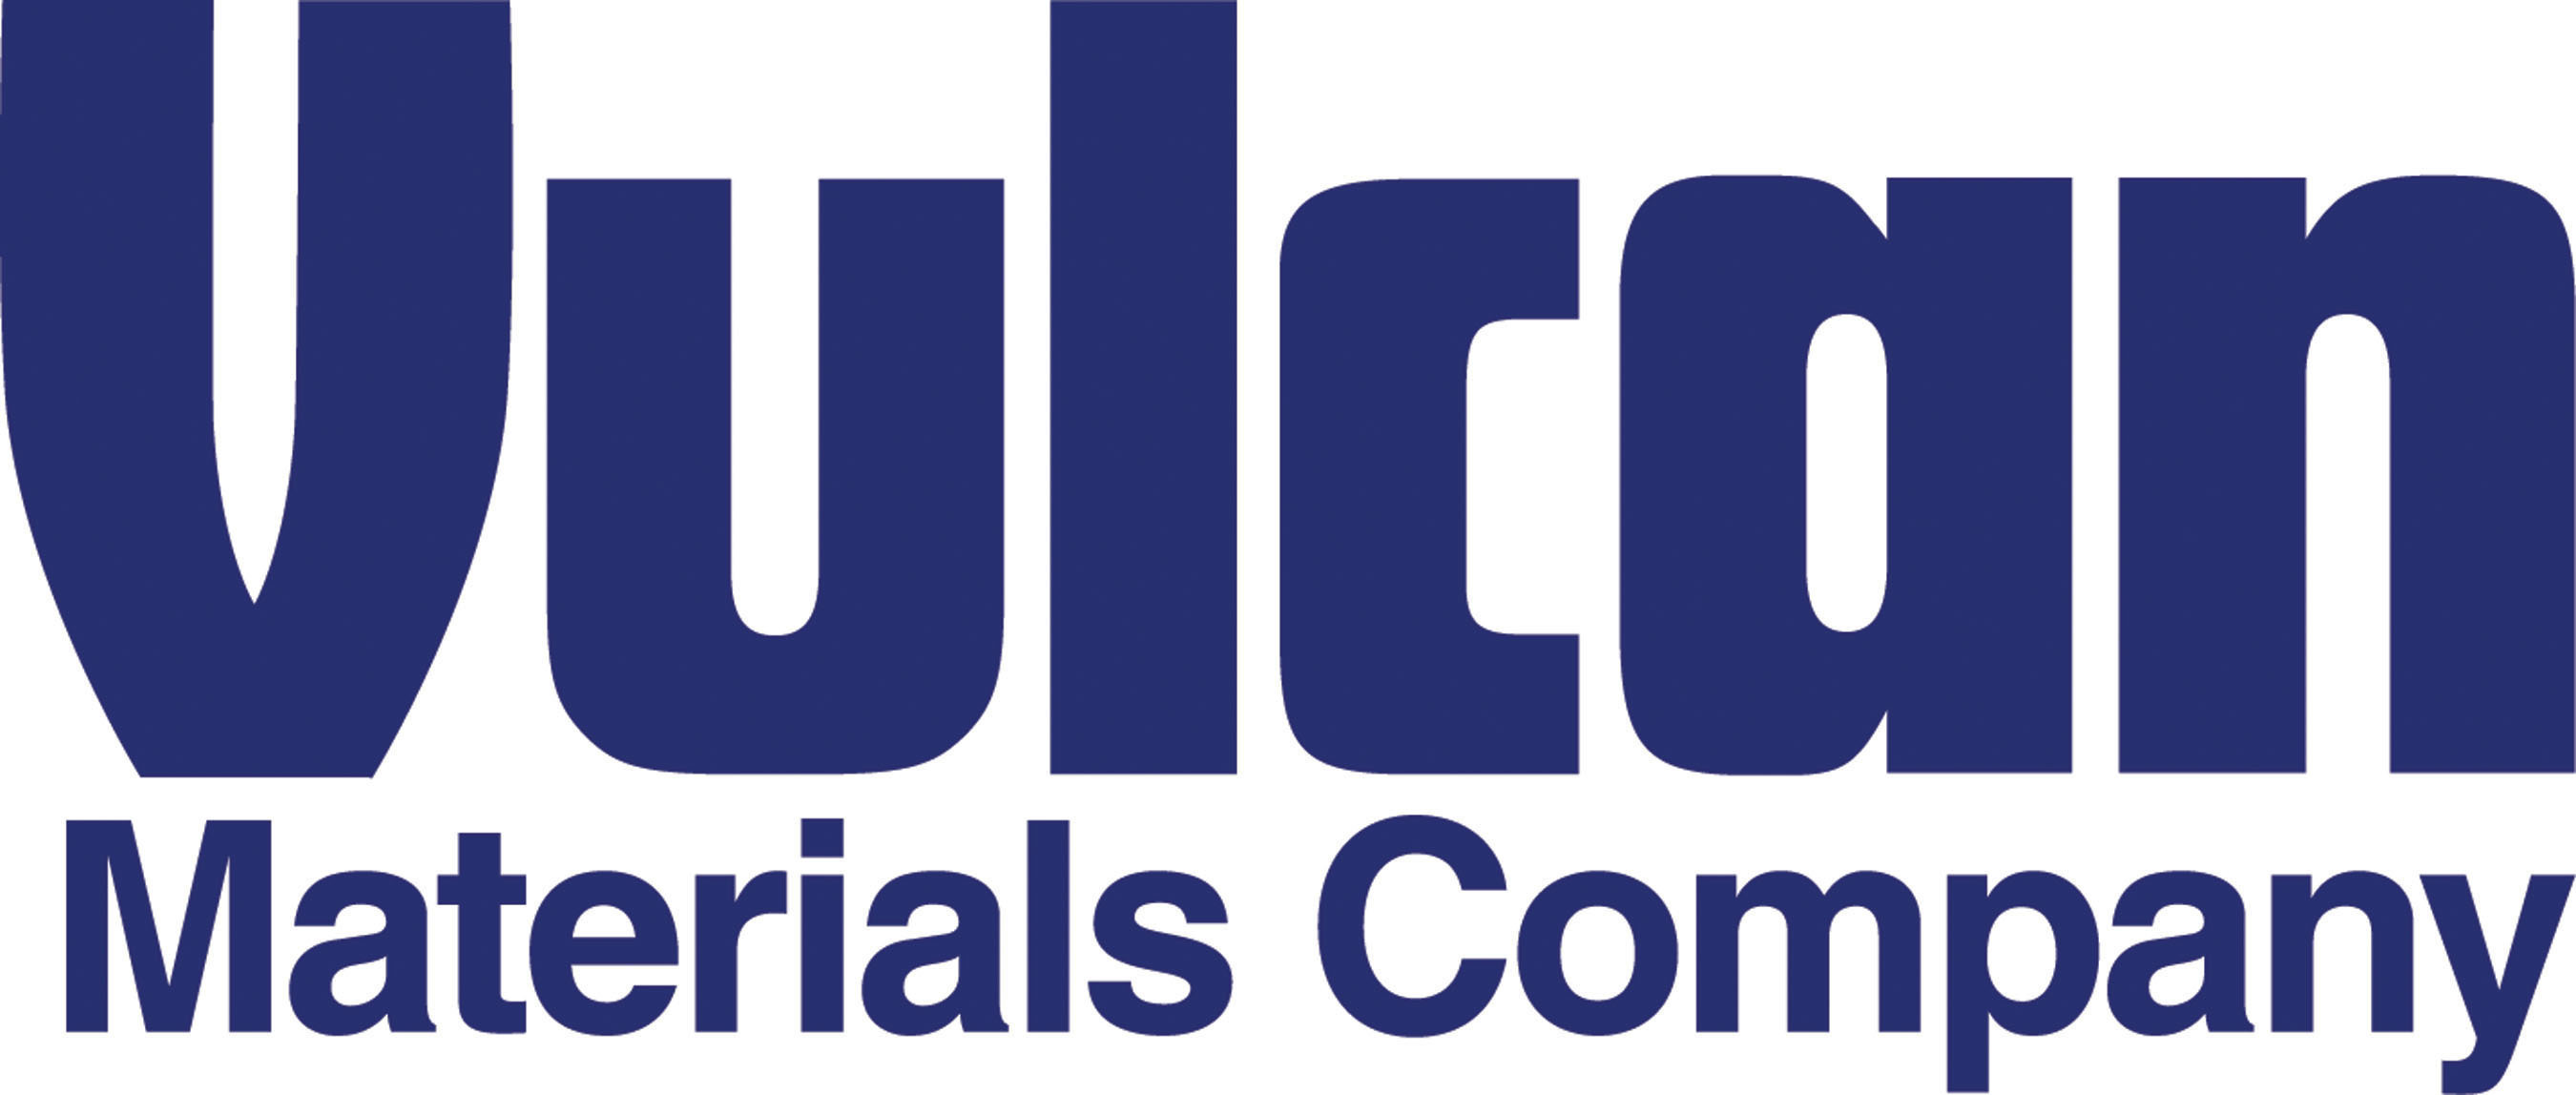 Vulcan Announces Fourth Quarter 2015 Results